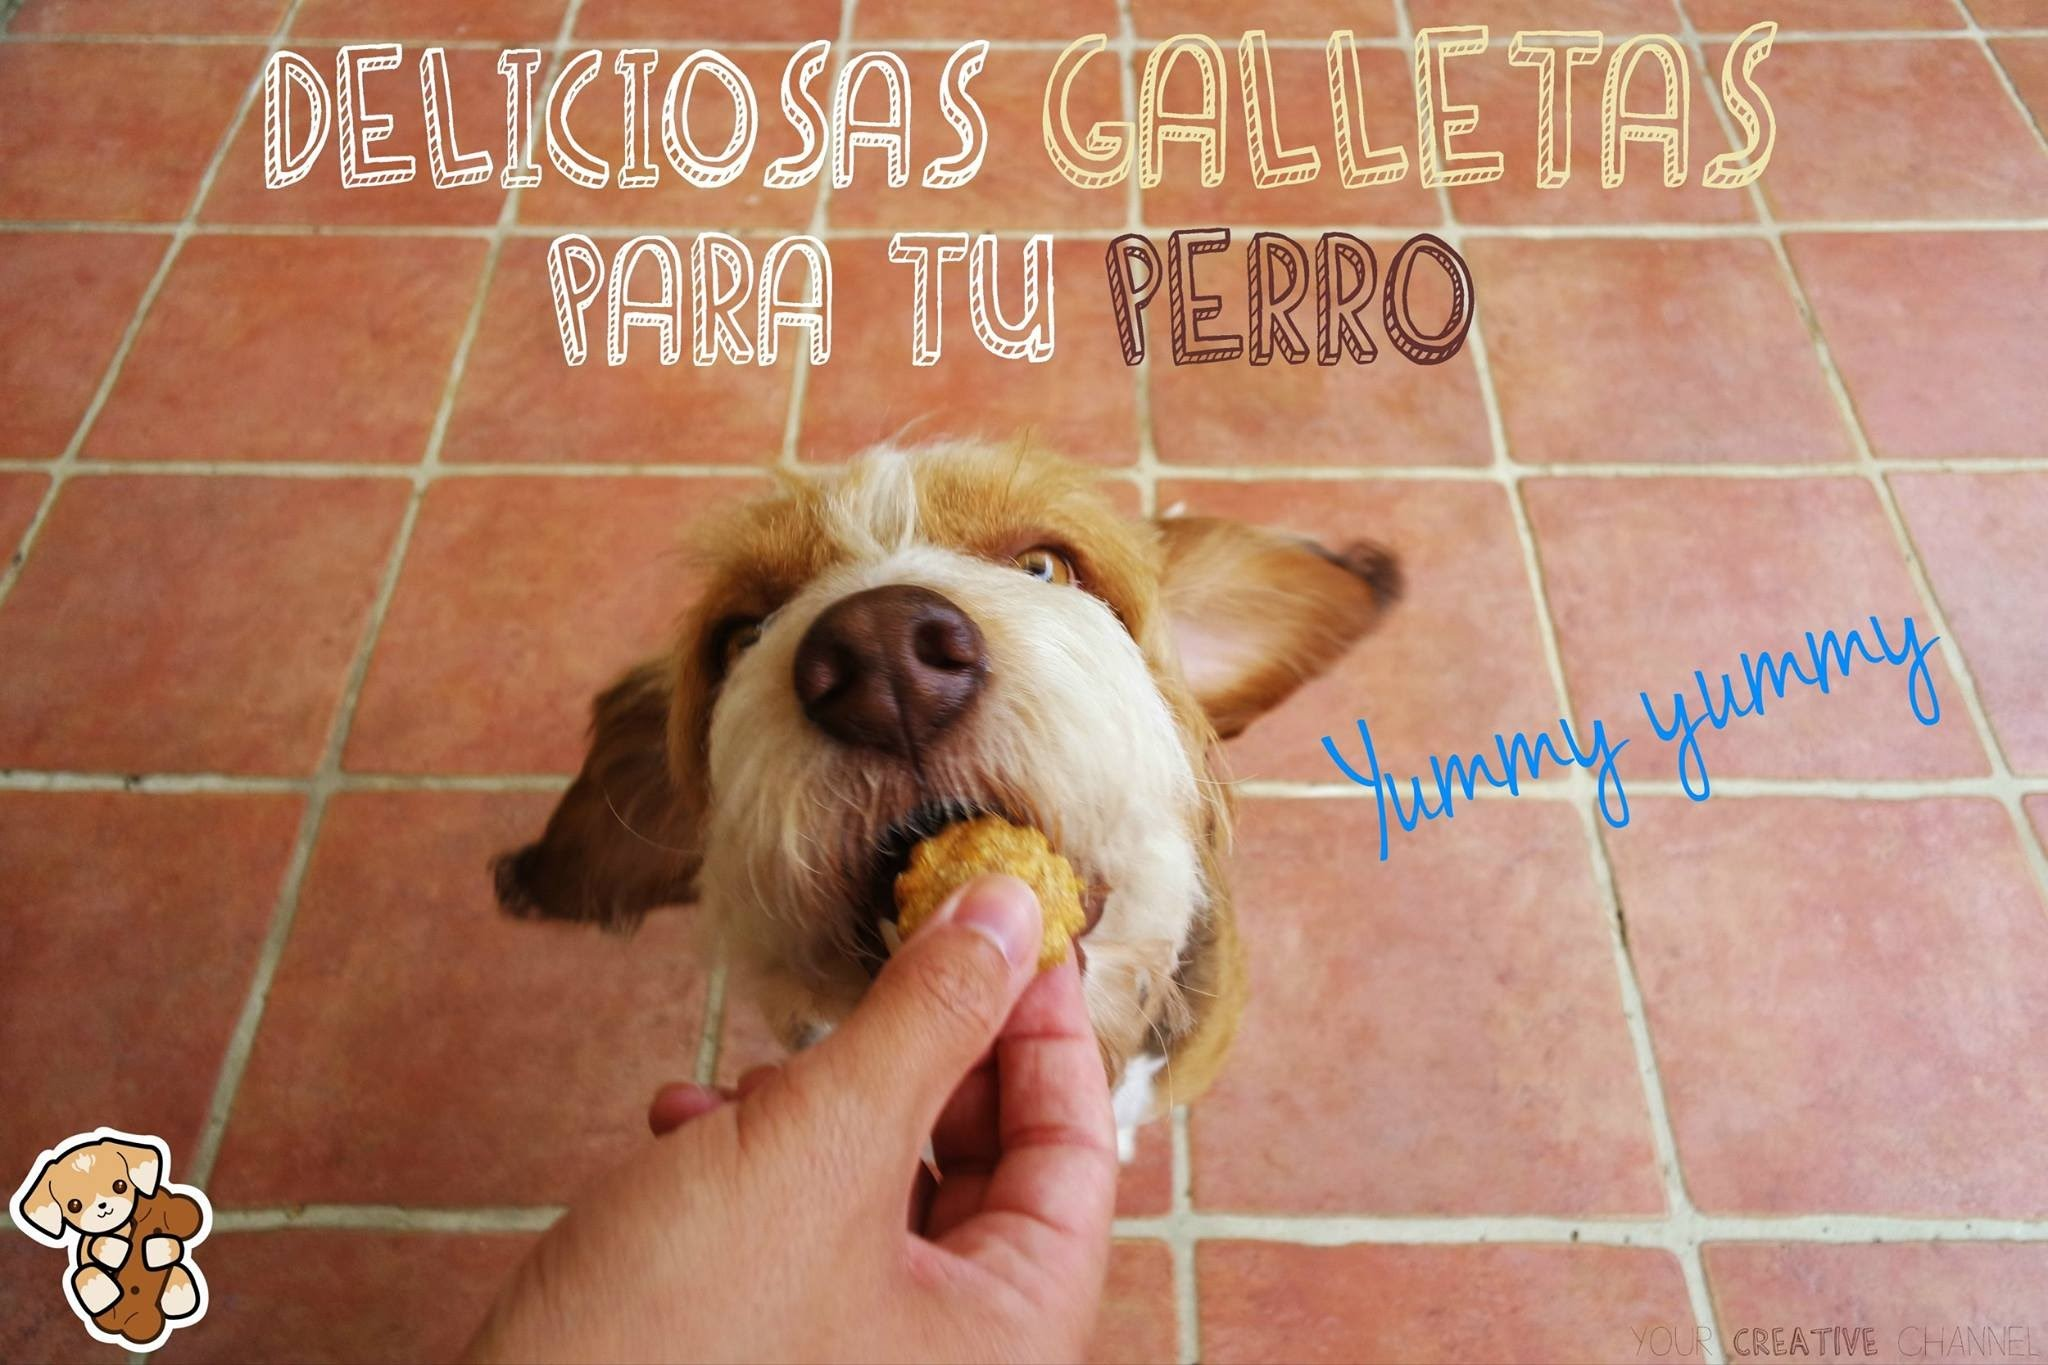 Riquísimas y saludables galletas para tu perro - Tasty and healthy dog treats